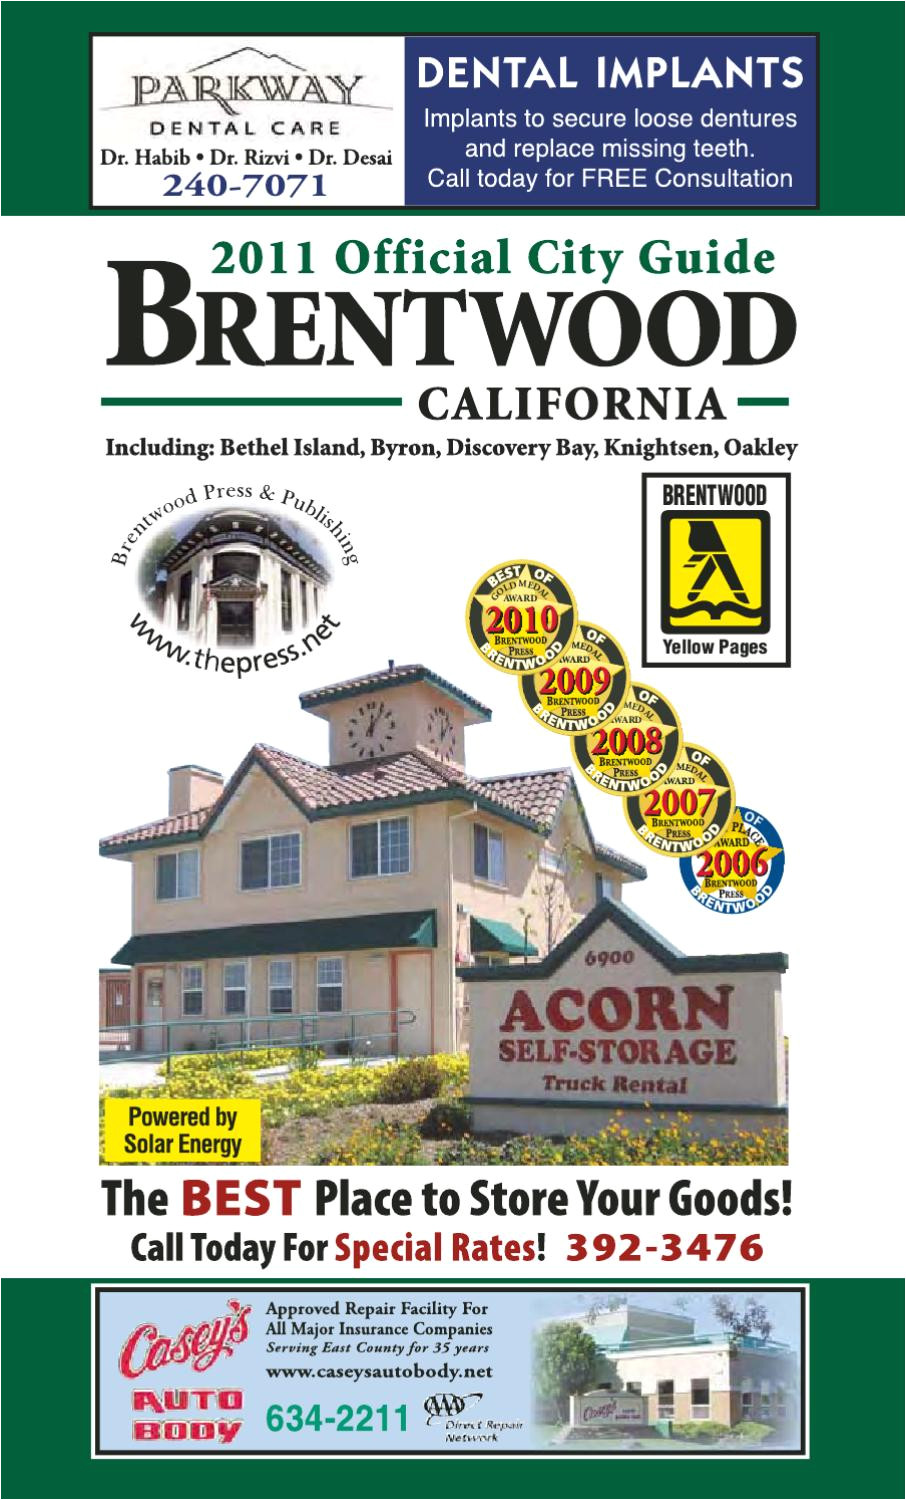 Critter Getter Pest Control Mesa Az Brentwood Official City Guide Business Directory 2011 2012 by